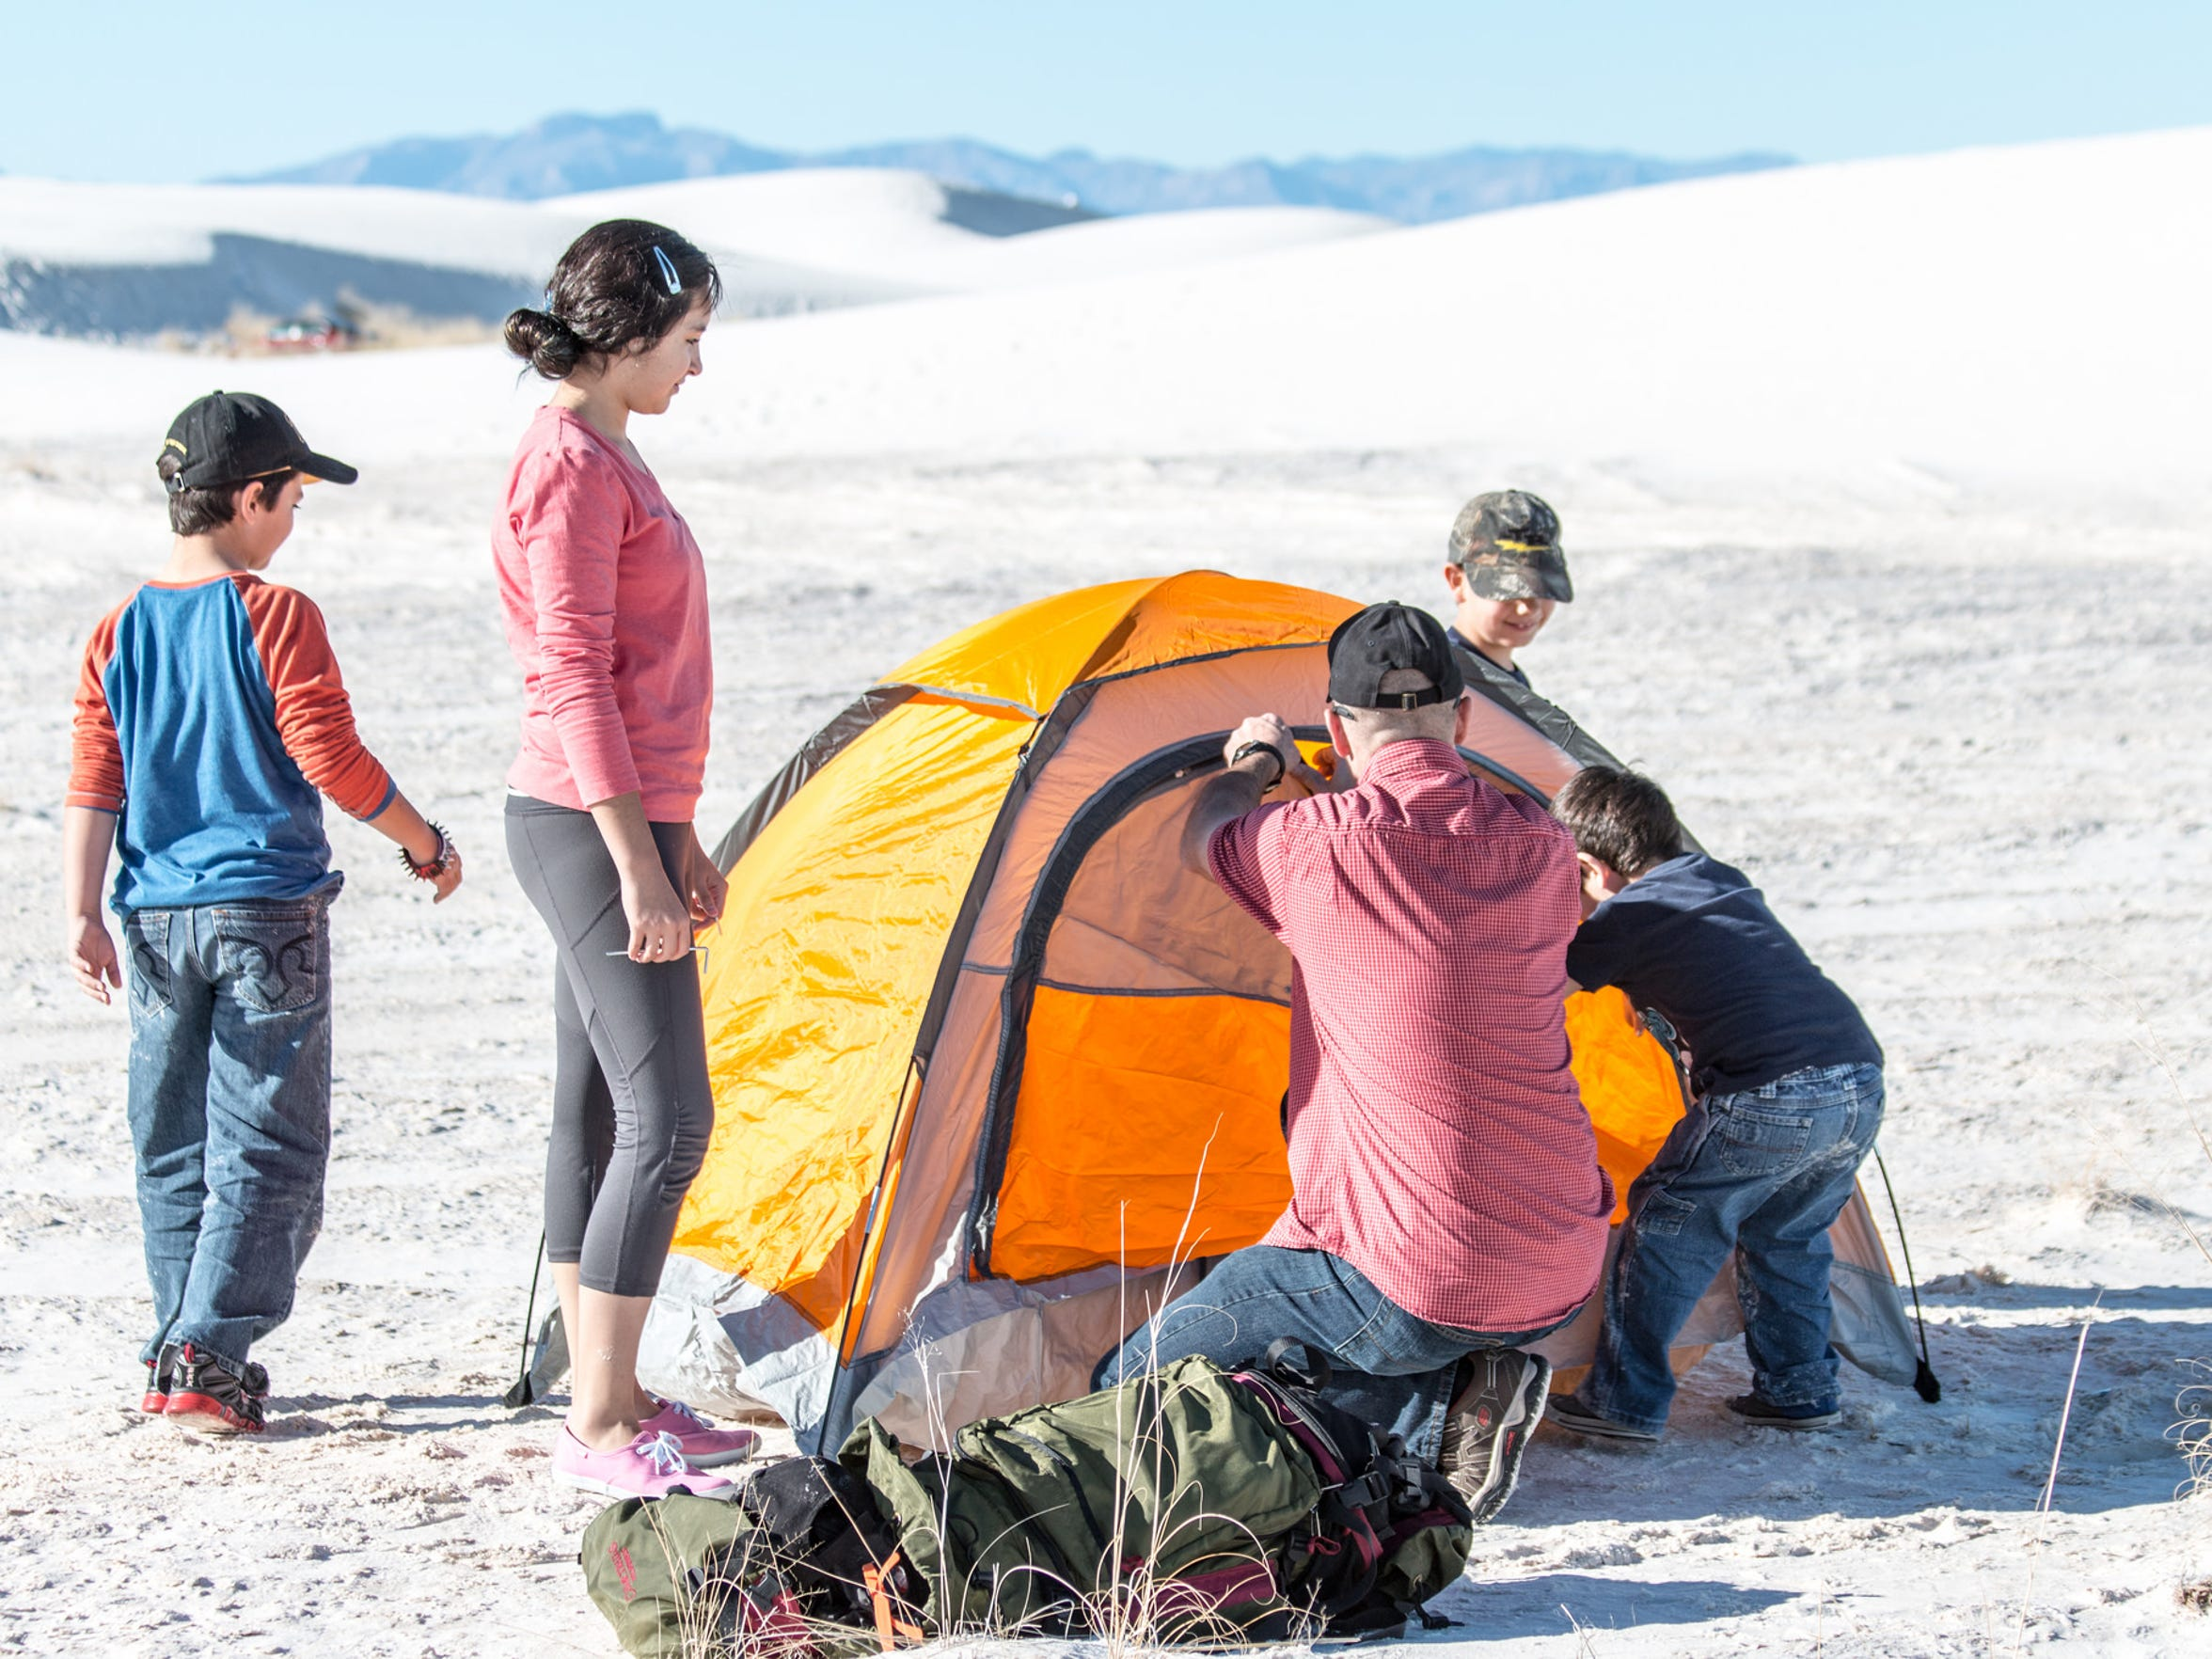 There are 10 primitive backcountry camping sites available on a first-come, first-served basis at White Sands National Monument.